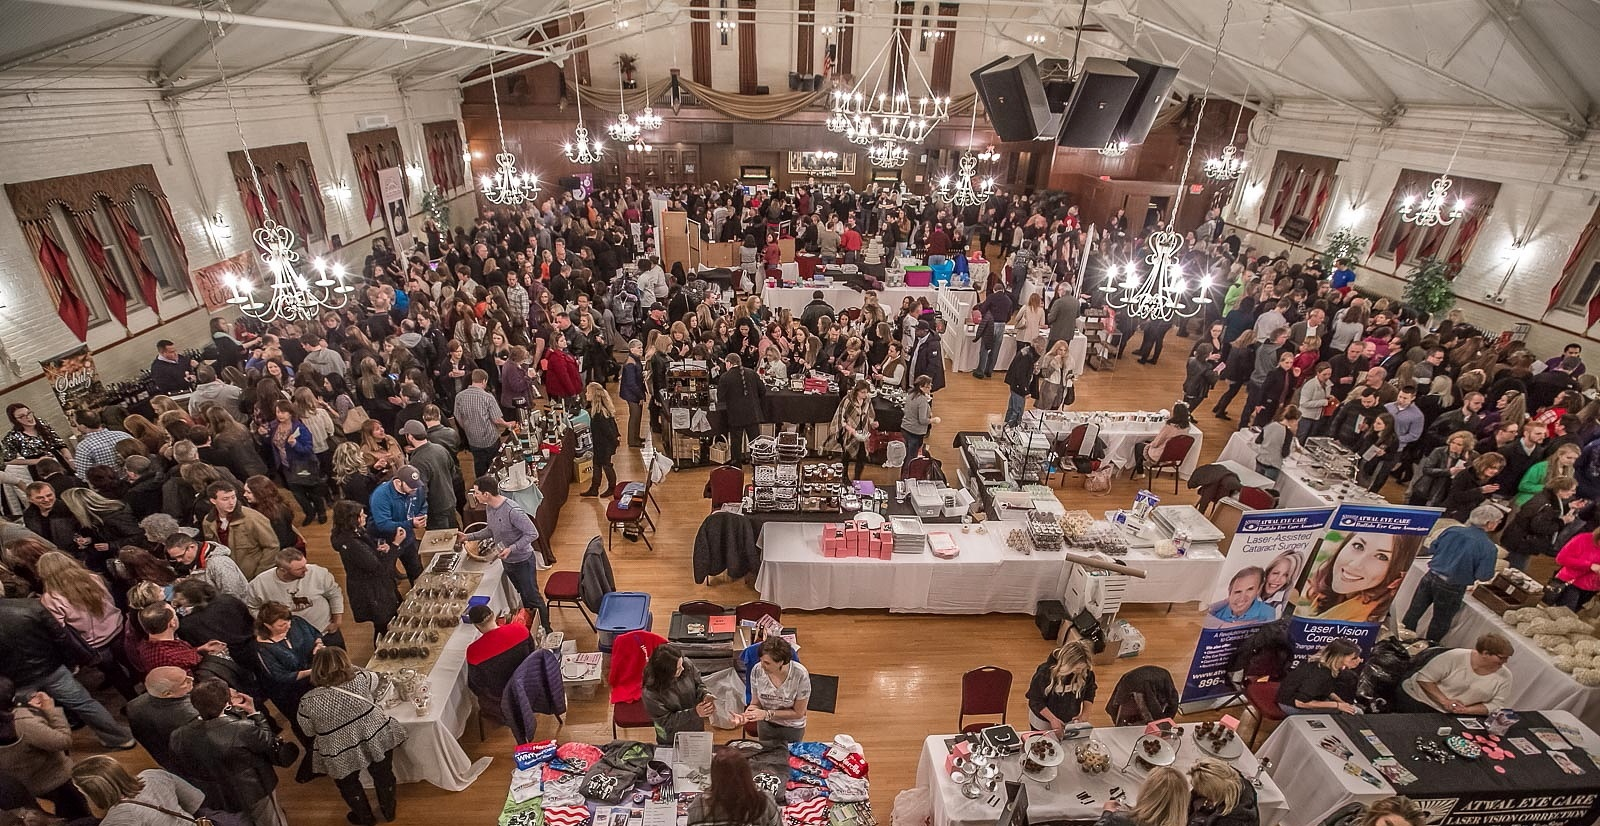 A wide look at the activity inside the Tonawanda Castle during the Wine and Chocolate Affair in February 2016. Christmas at the Castle runs in the same venue this weekend. (Don Nieman/Special to The News)